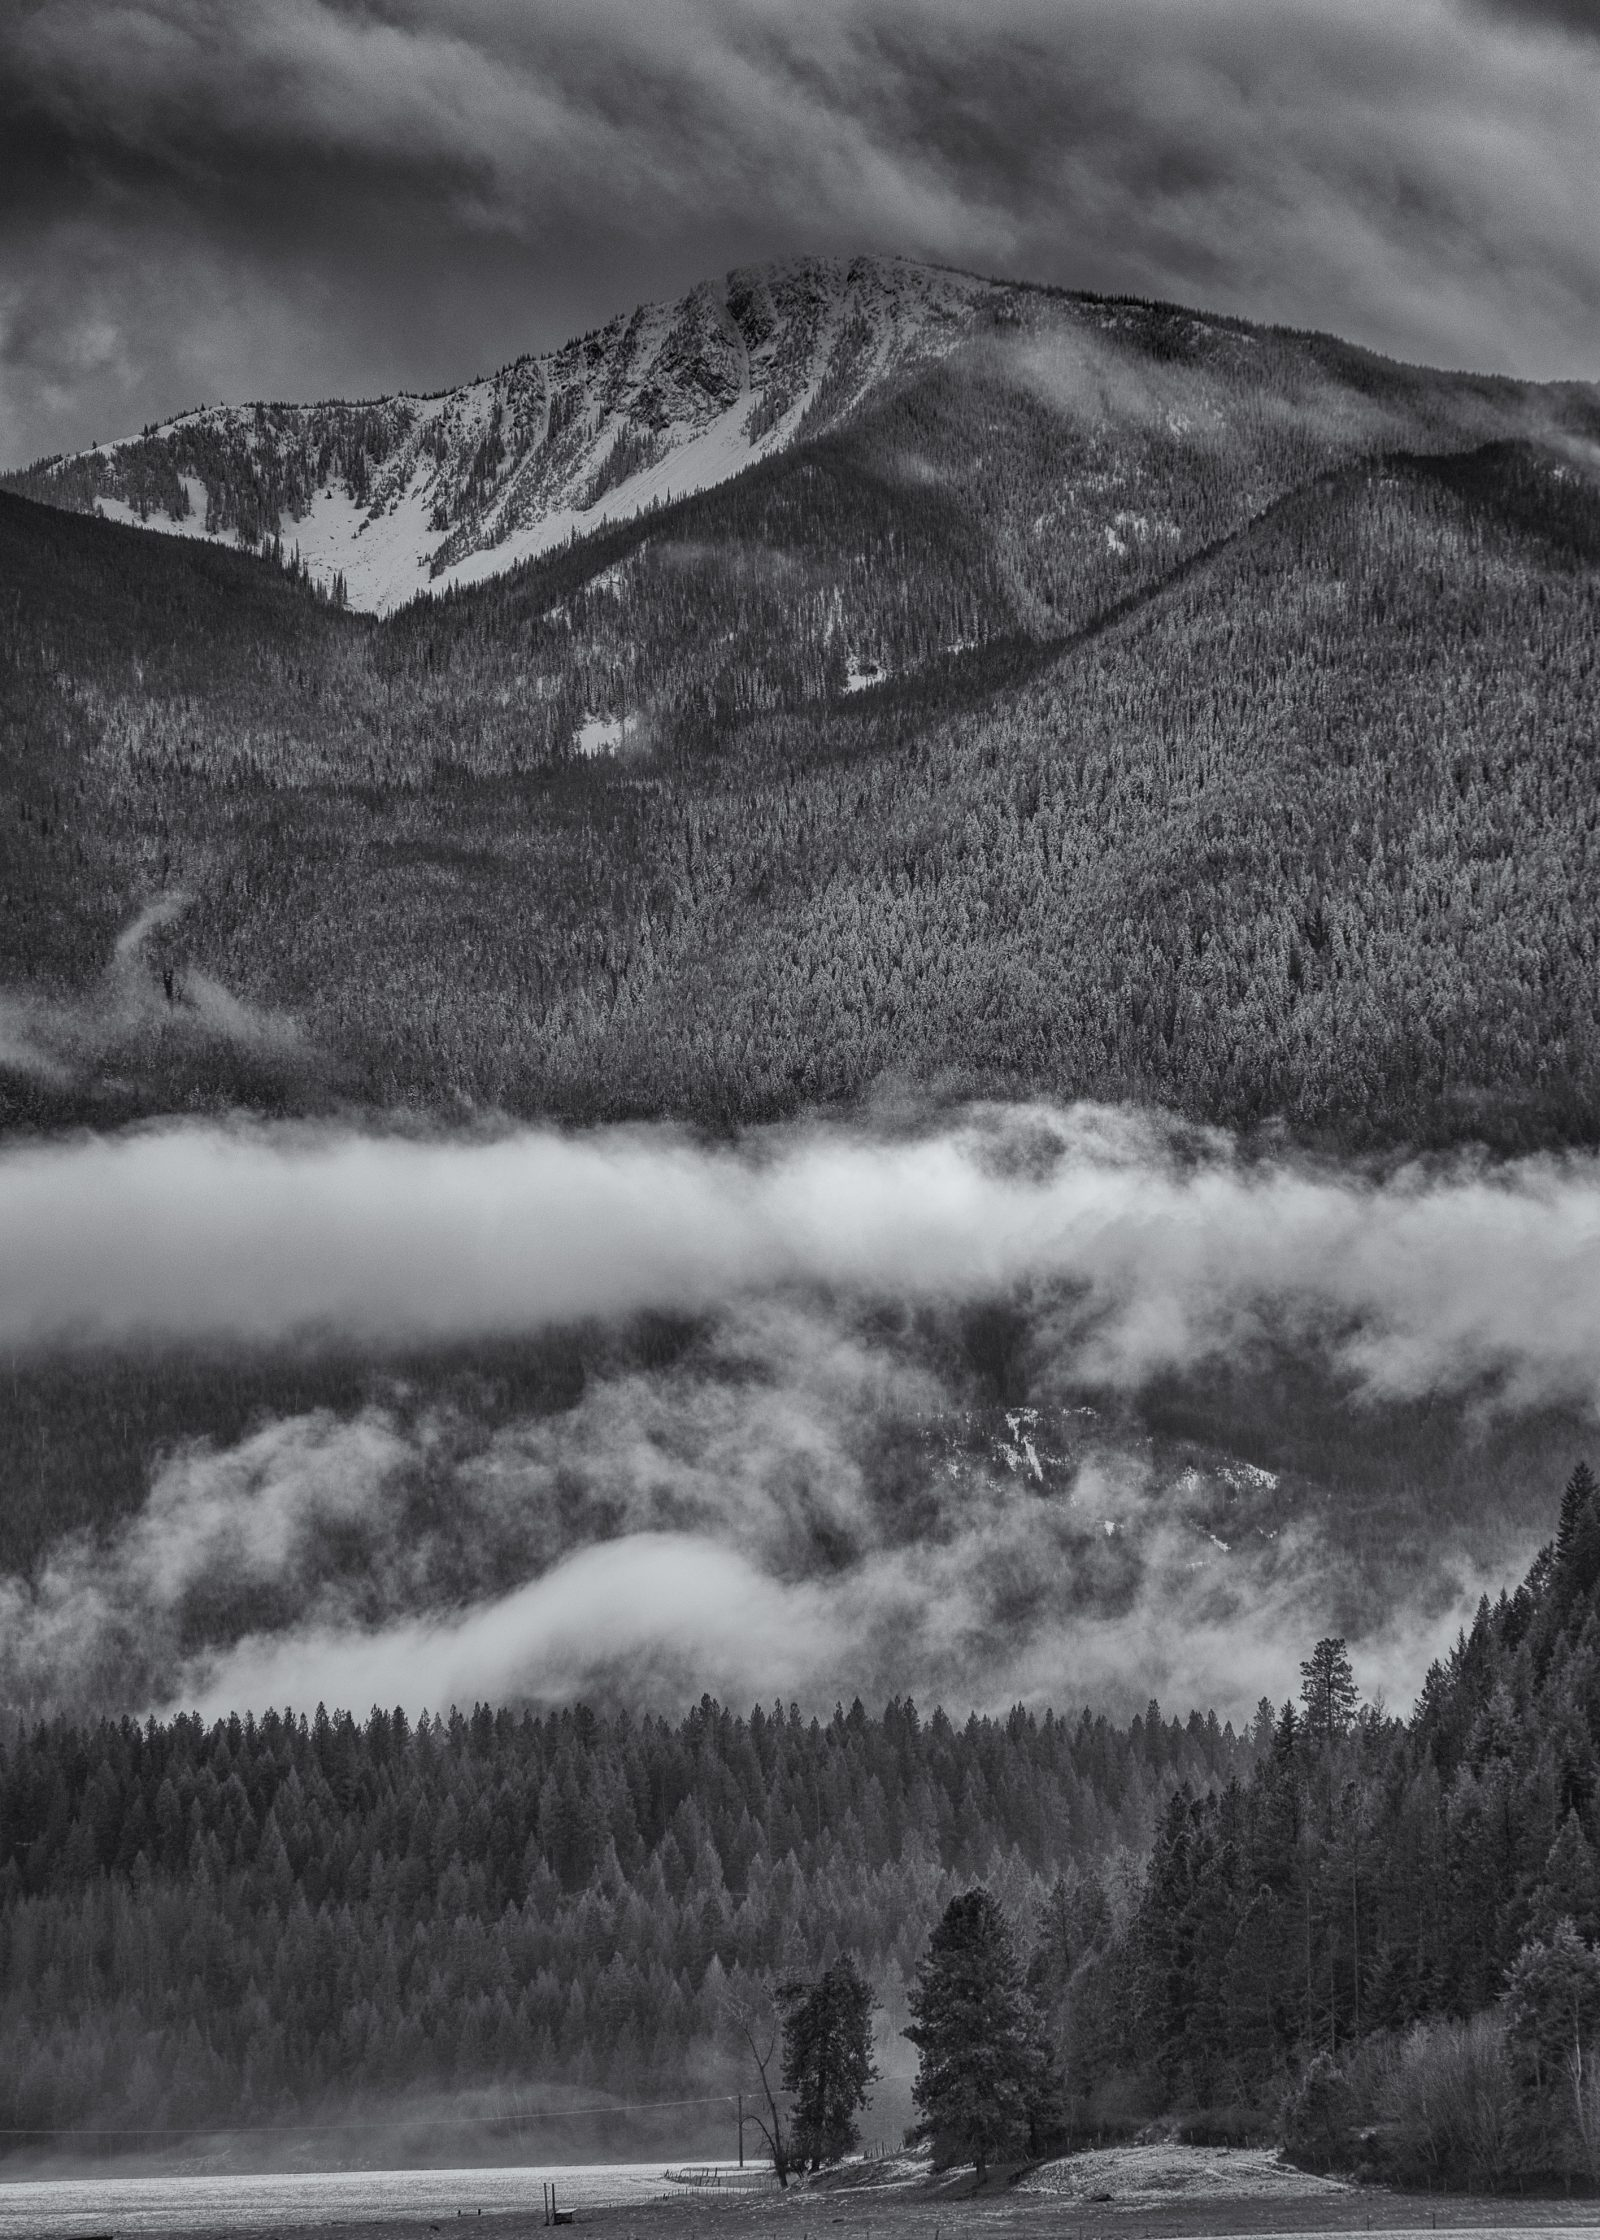 Clifty Mountain and Fog